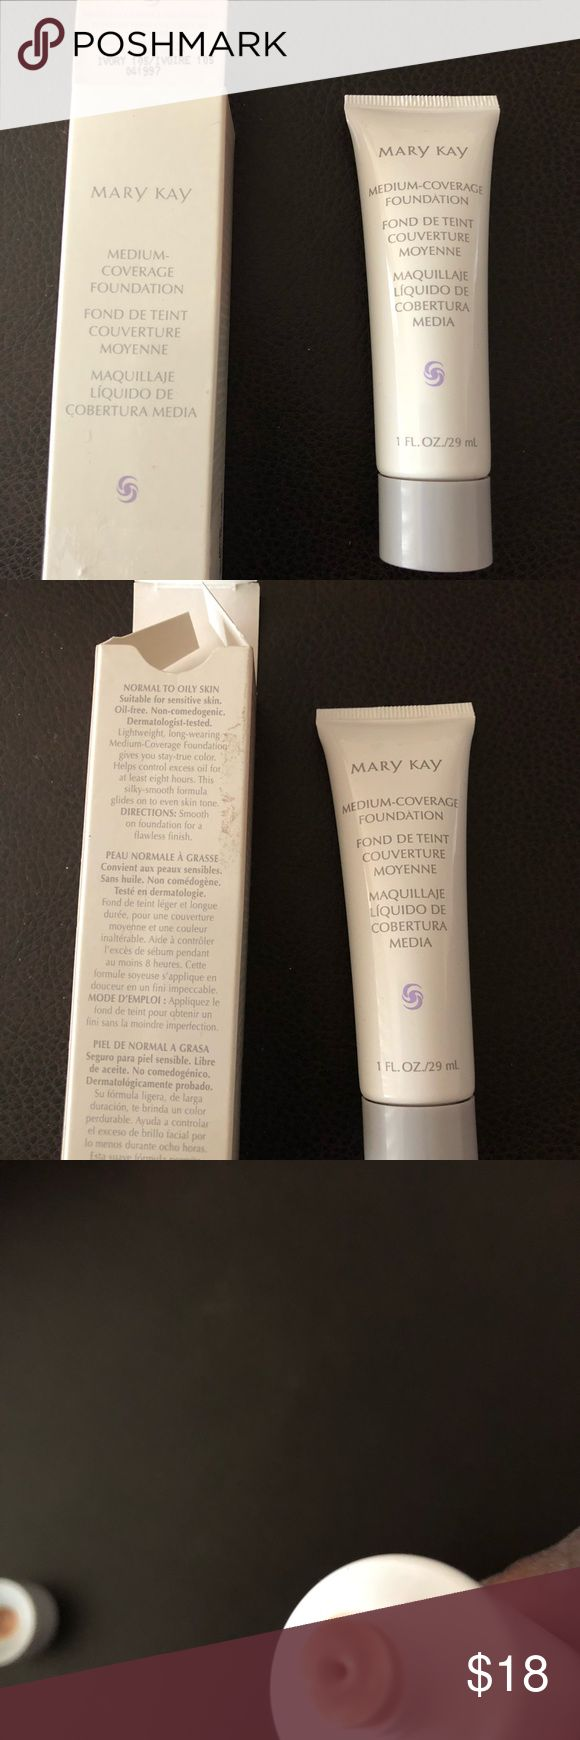 Mary Kay medium coverage foundation (Ivory 105) Wonderful 8 hour oil control foundation only need to apply once. Mary Kay Makeup Foundation